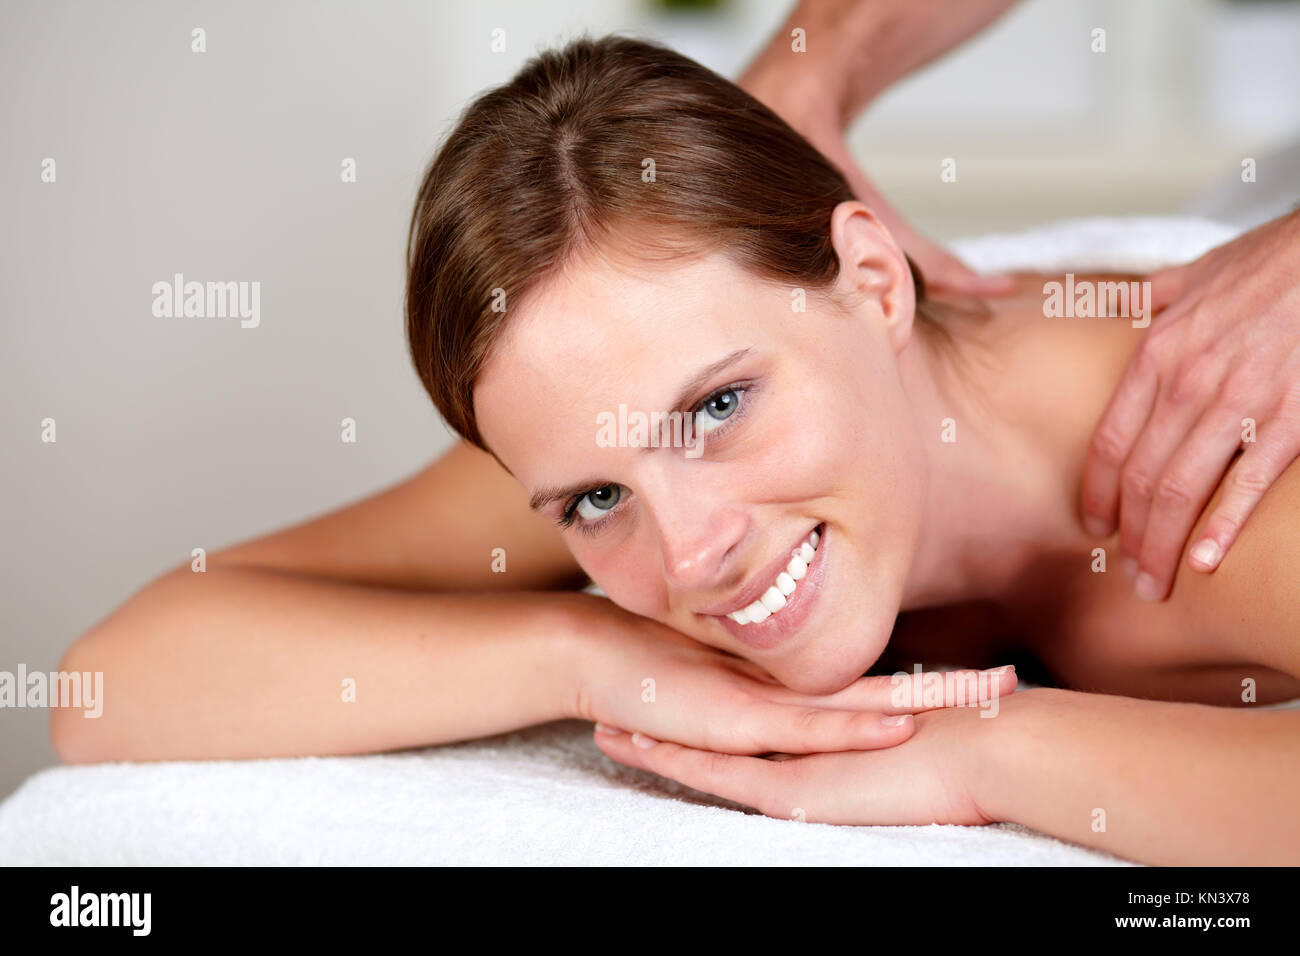 Portrait of a lovely pretty girl smiling and relaxing while getting a massage from a professional masseuse at spa Stock Photo